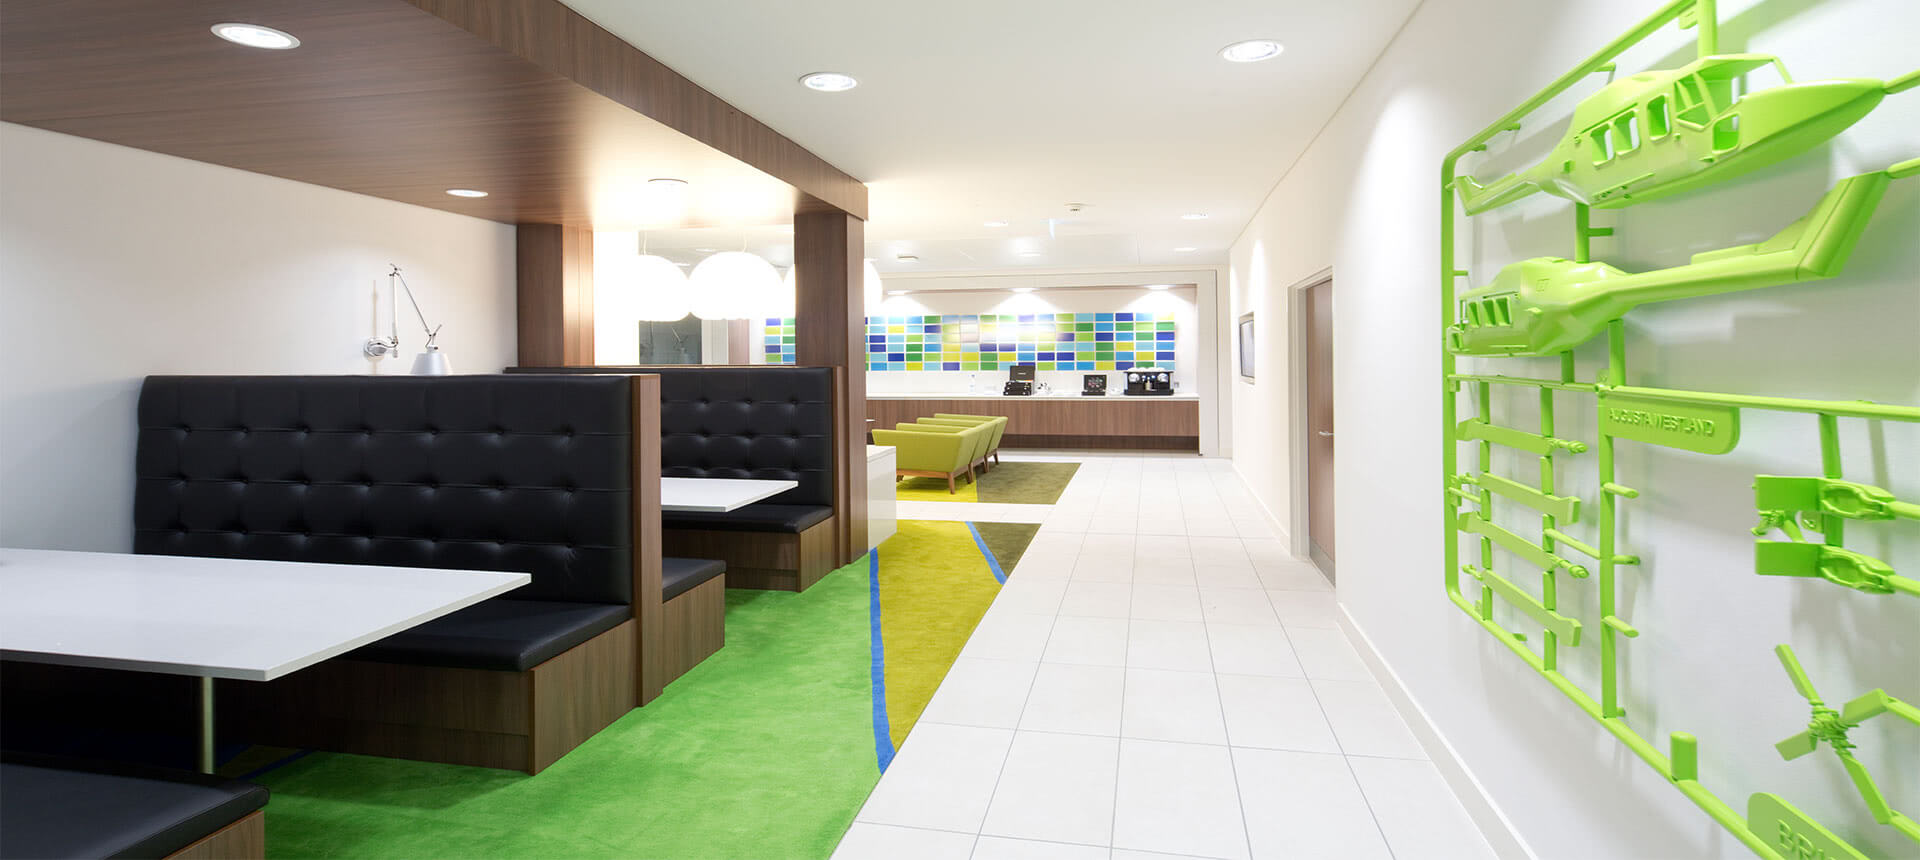 Deloitte edinburgh callisonrtkl for Office design edinburgh